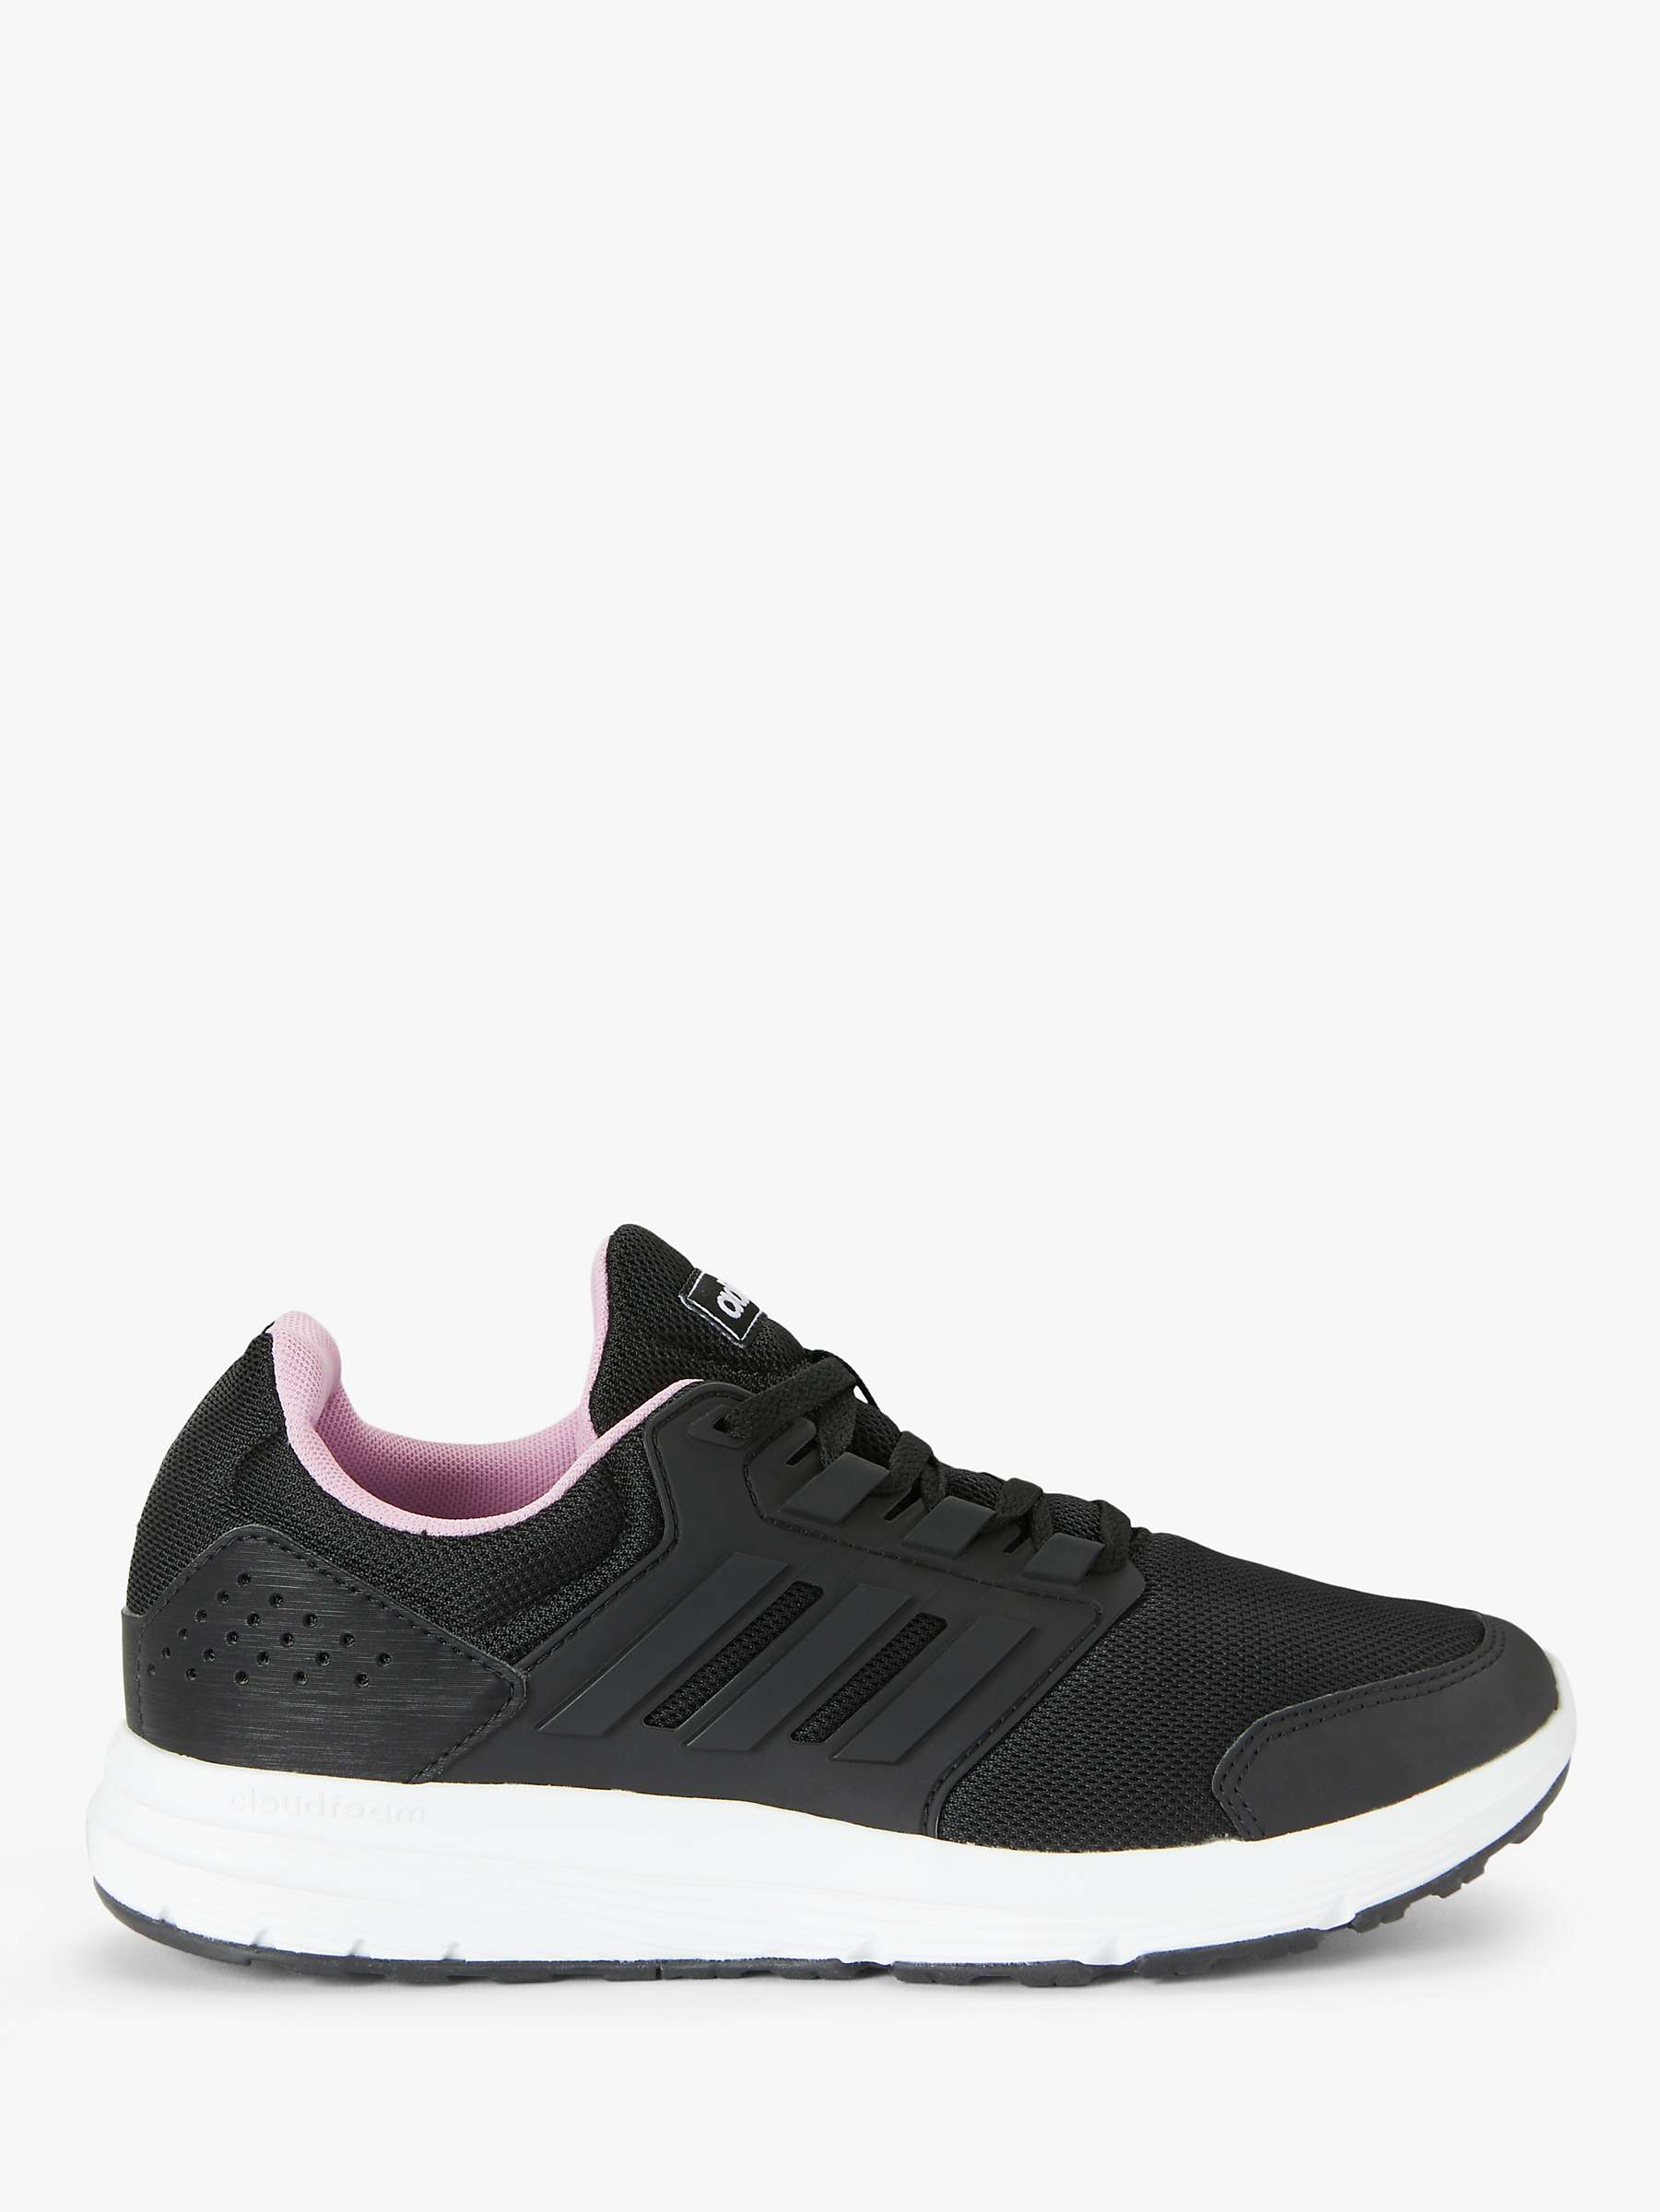 black and pink adidas sneakers 46dfff